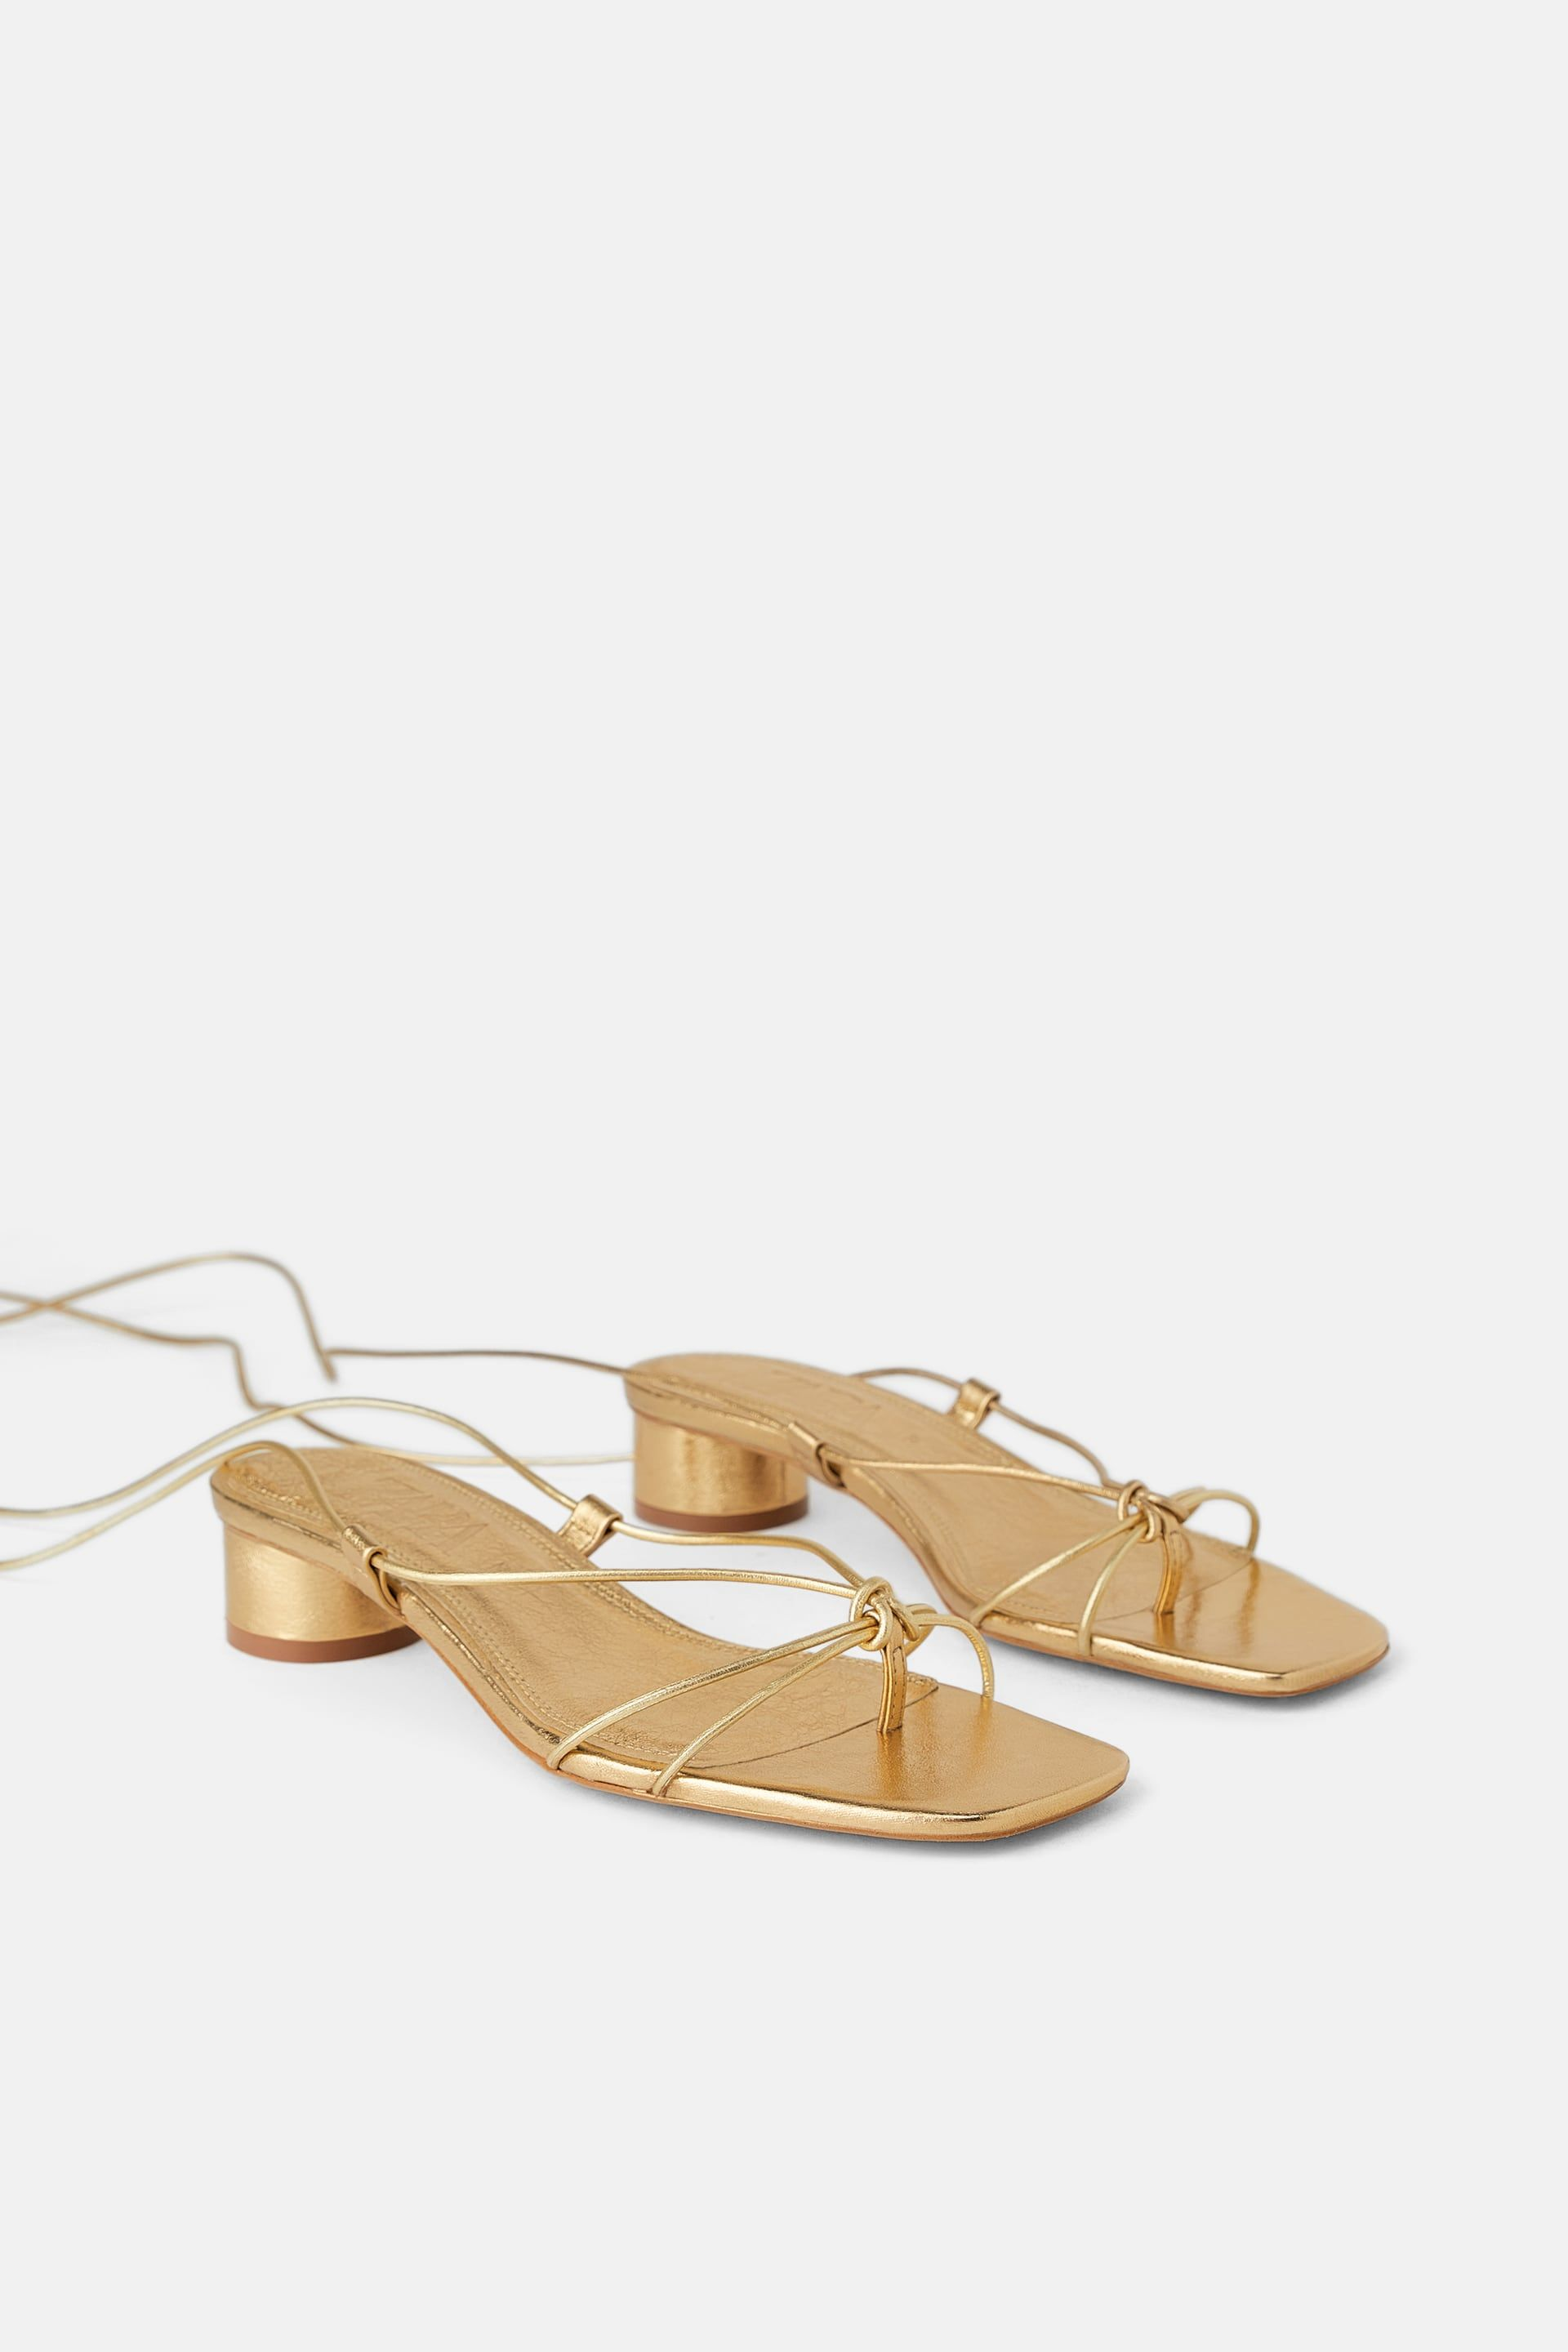 f9af449e21e36 HEELED LEATHER SANDALS WITH THIN STRAPS - NEW IN-WOMAN | ZARA United States